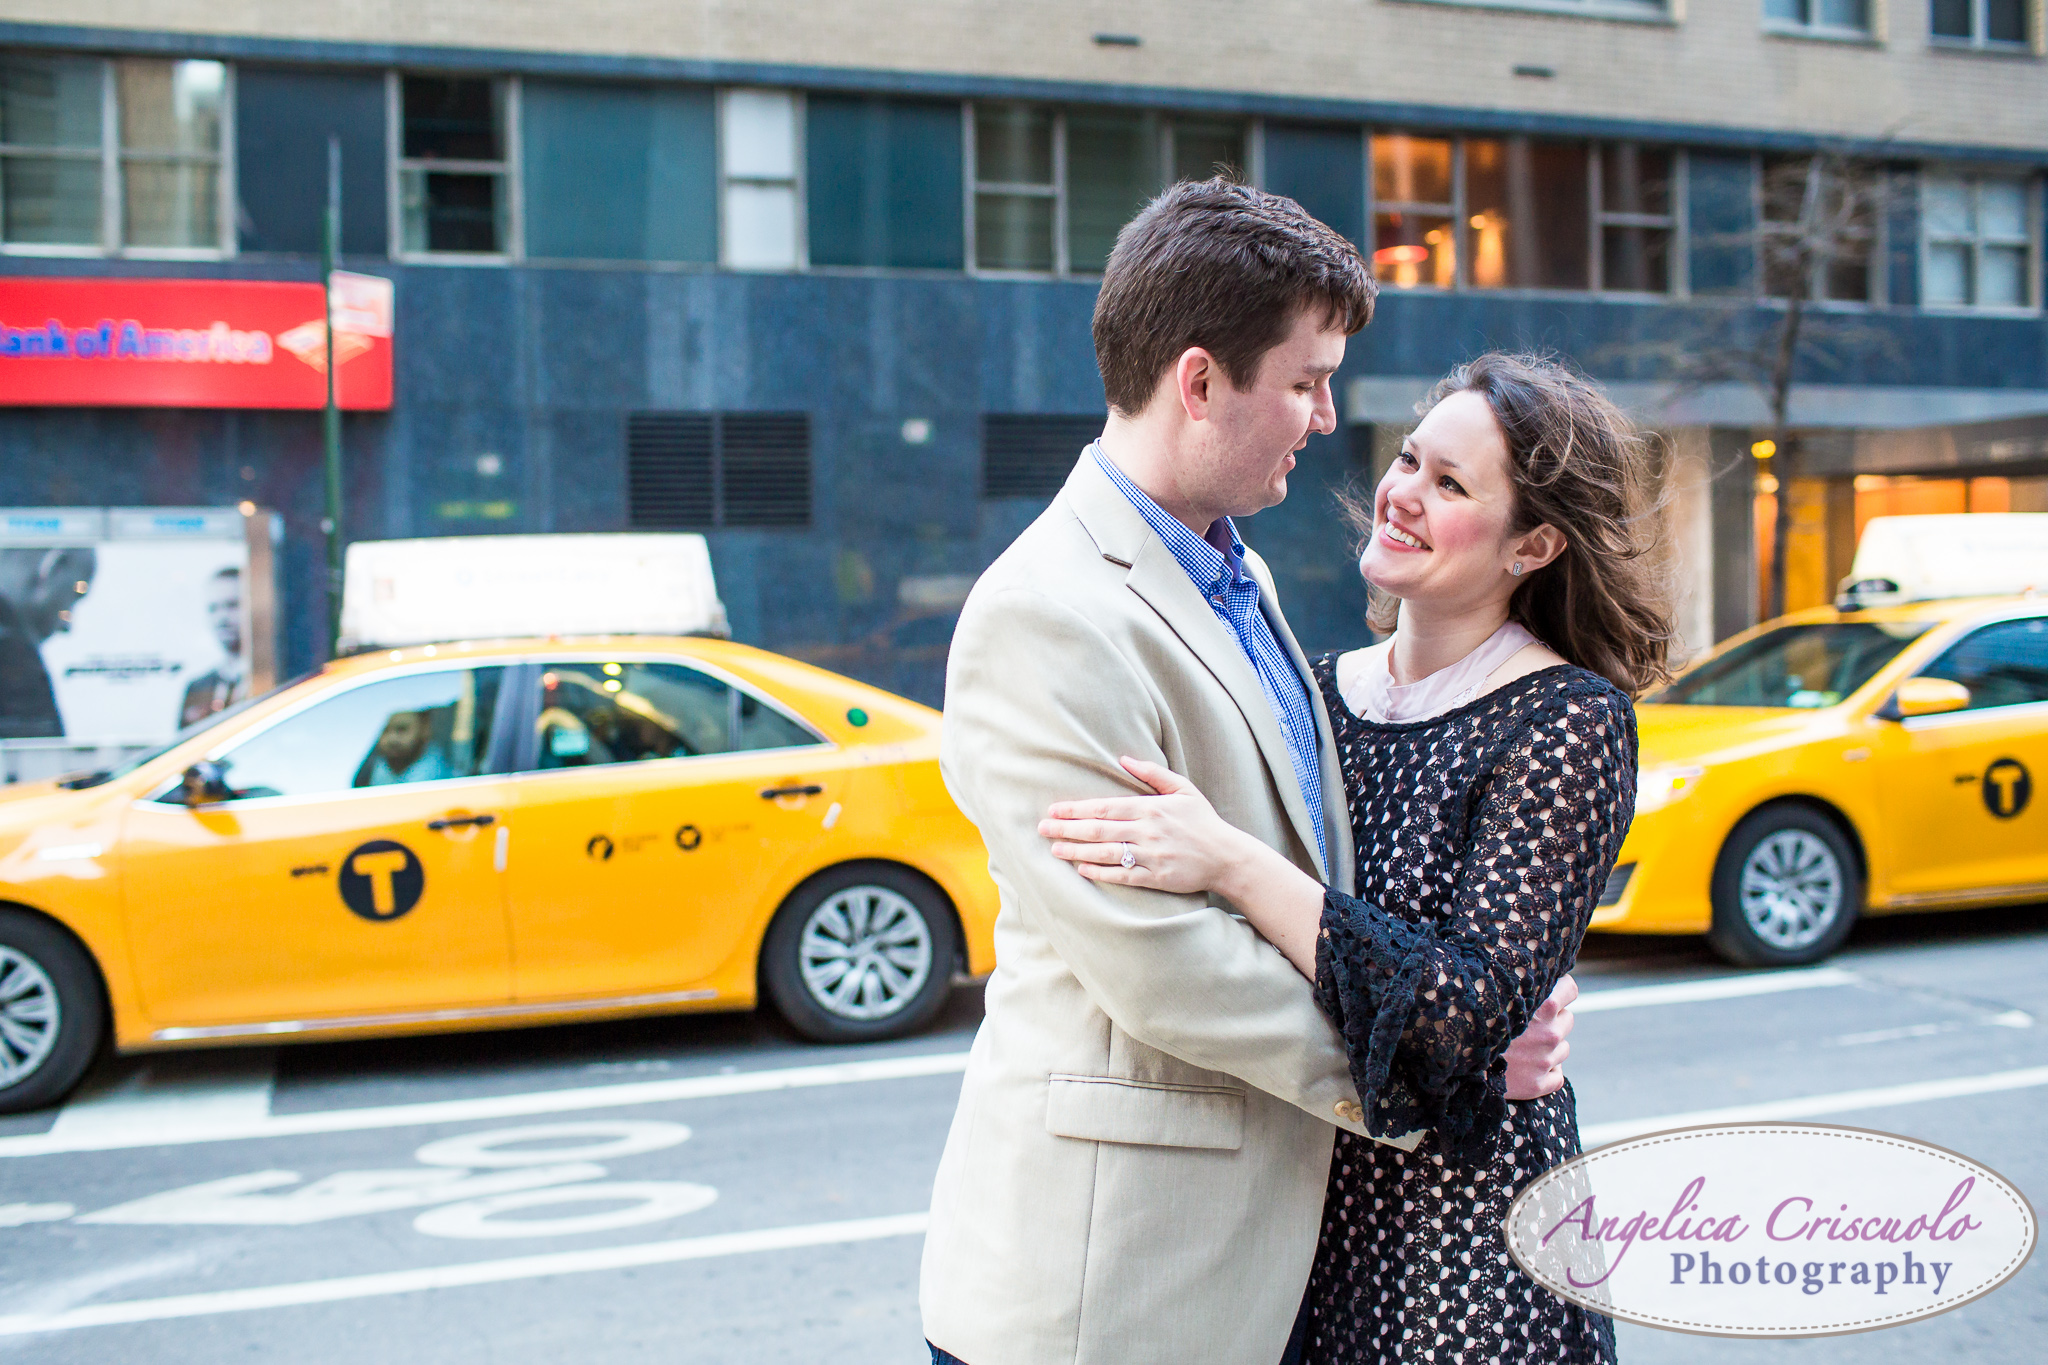 DC Couple in NYC NYC Wedding Engagement photos ideas by the LOVE sign on Avenue of the Americas